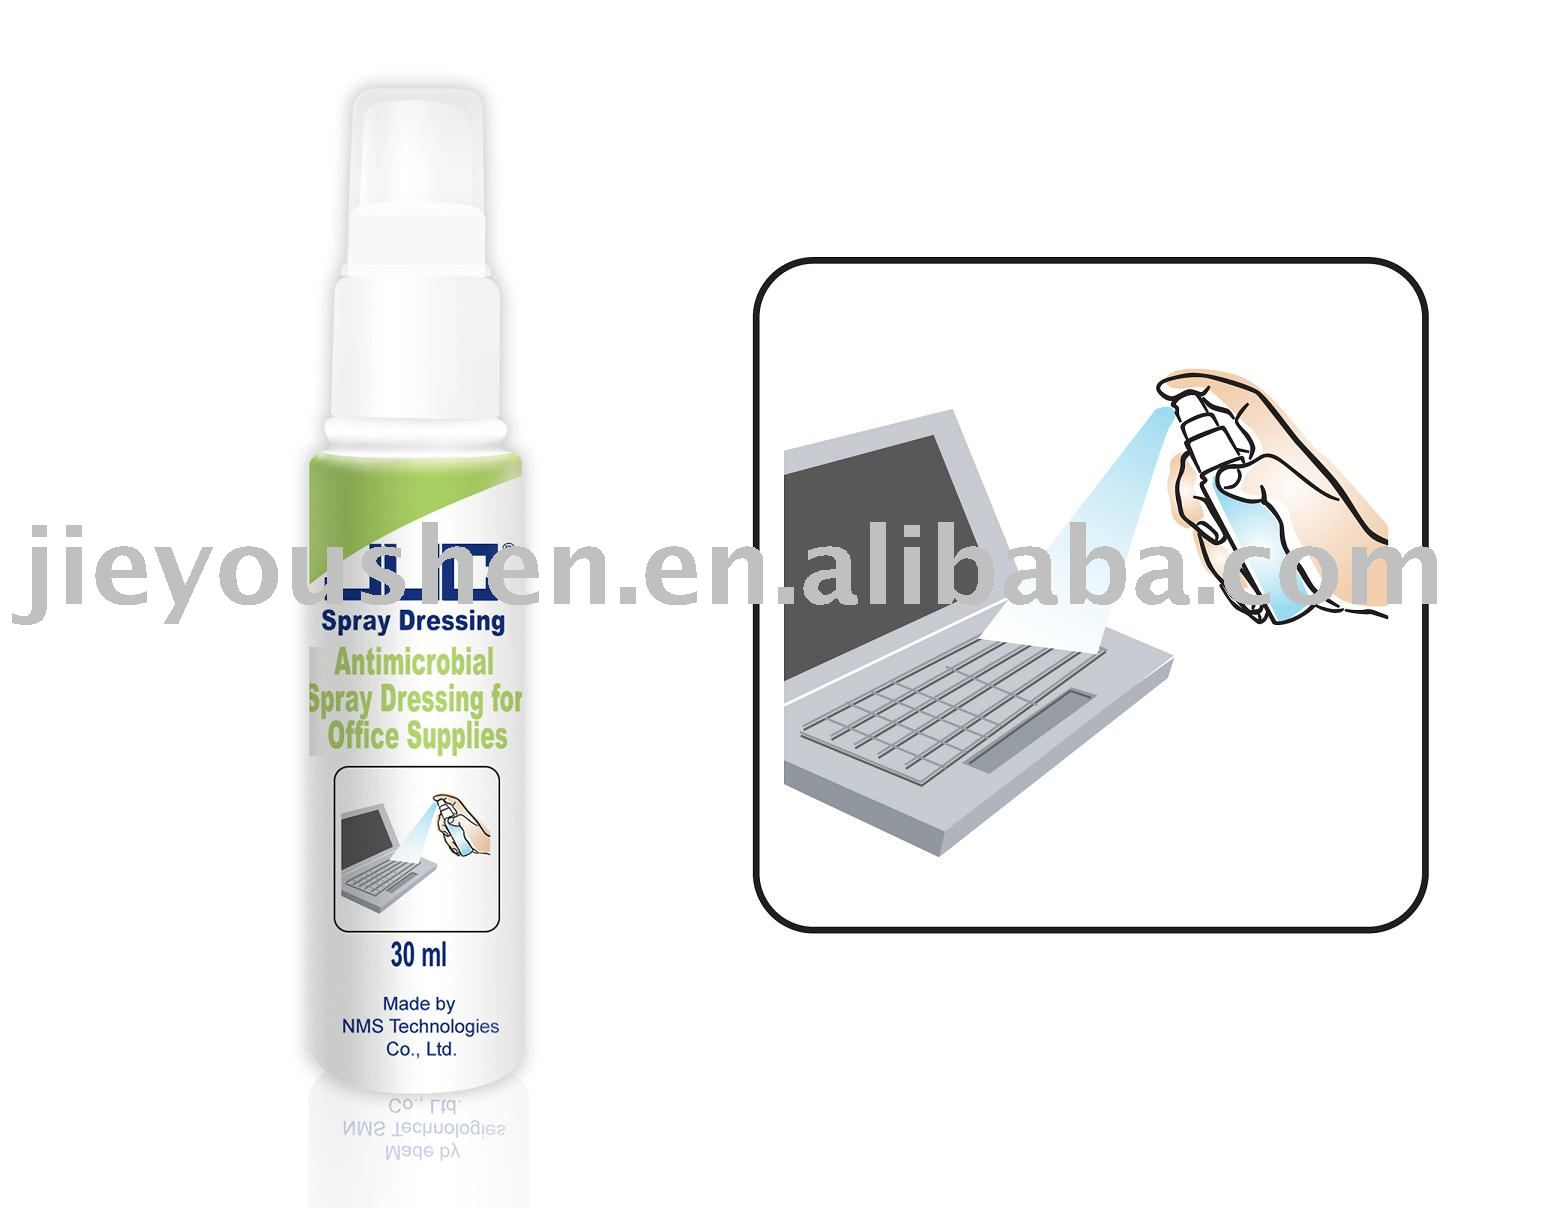 JUC Physical Antimicrobial Cleaning Spray for Office Supplies FDA CE